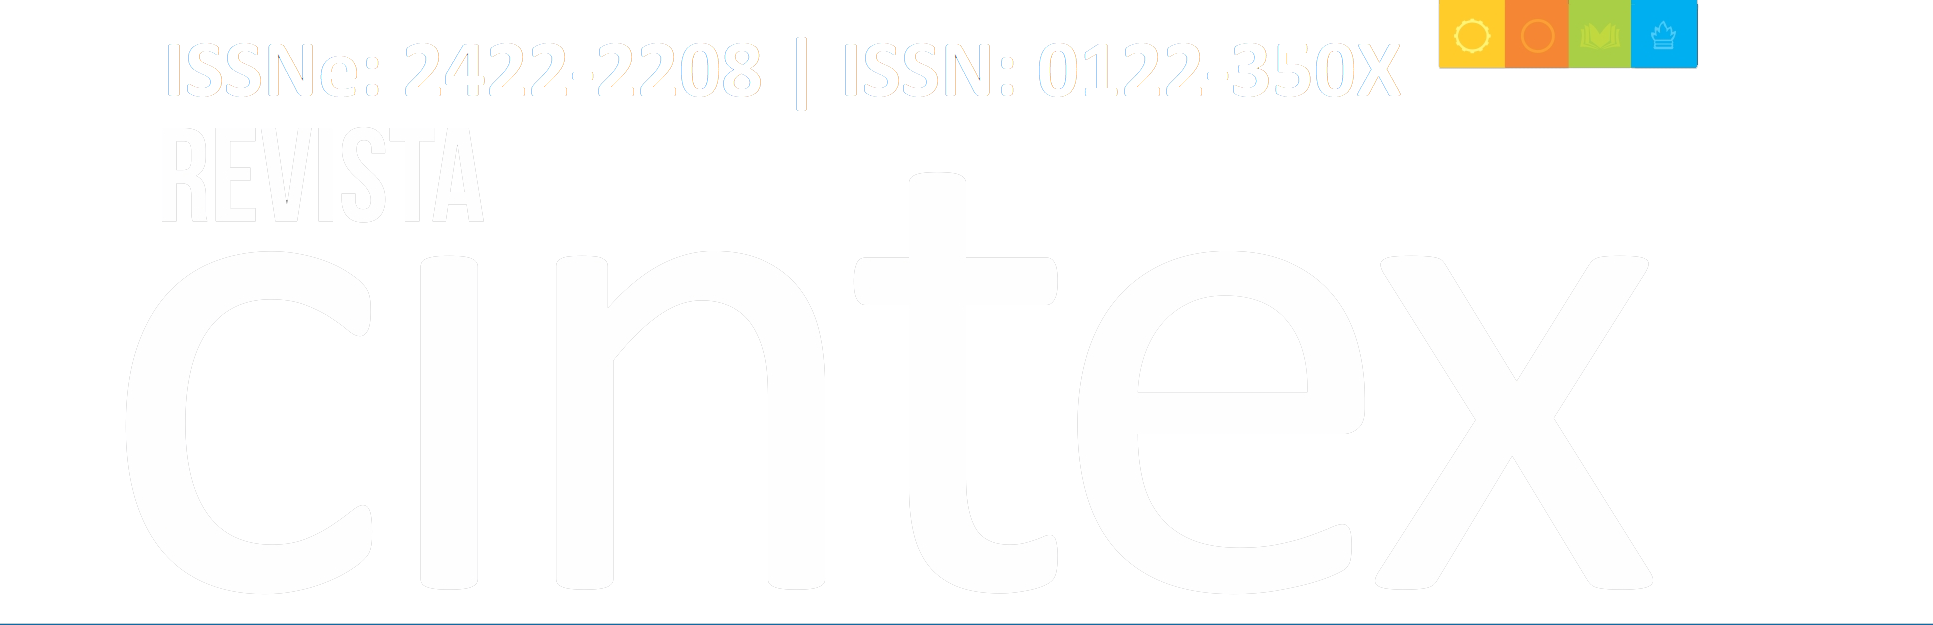 ISSNe: 2422-2208 | ISSN: 0122-350X